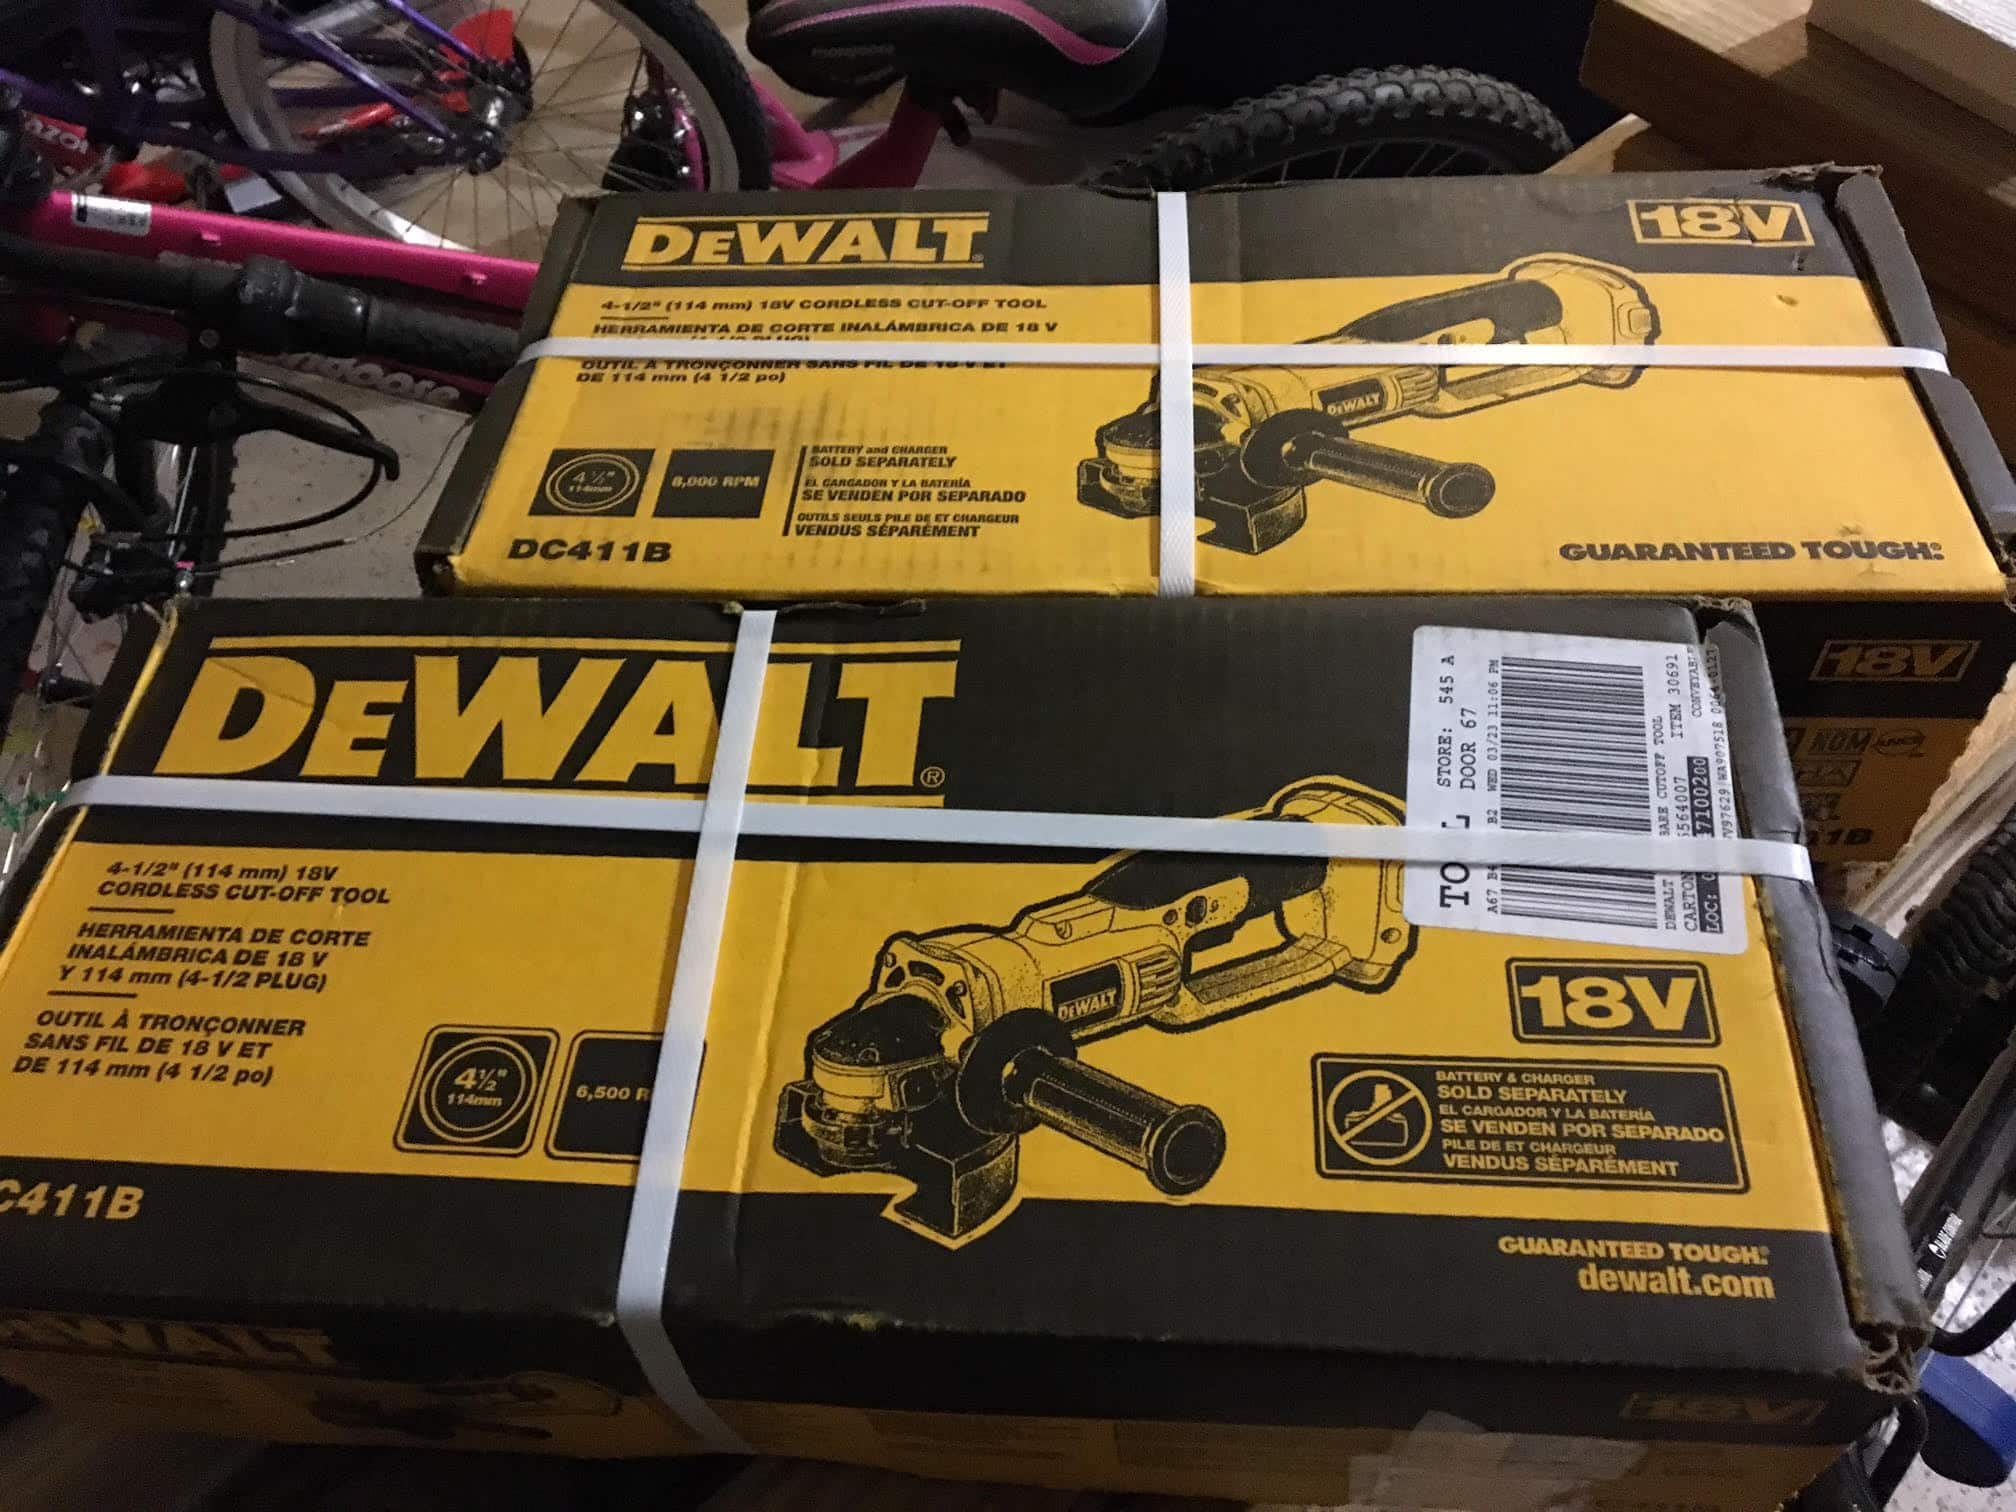 DEWALT 18-Volt NiCd Cordless 4-1/2 in. (114 mm) Cut-Off Tool (Tool-Only) $17.34